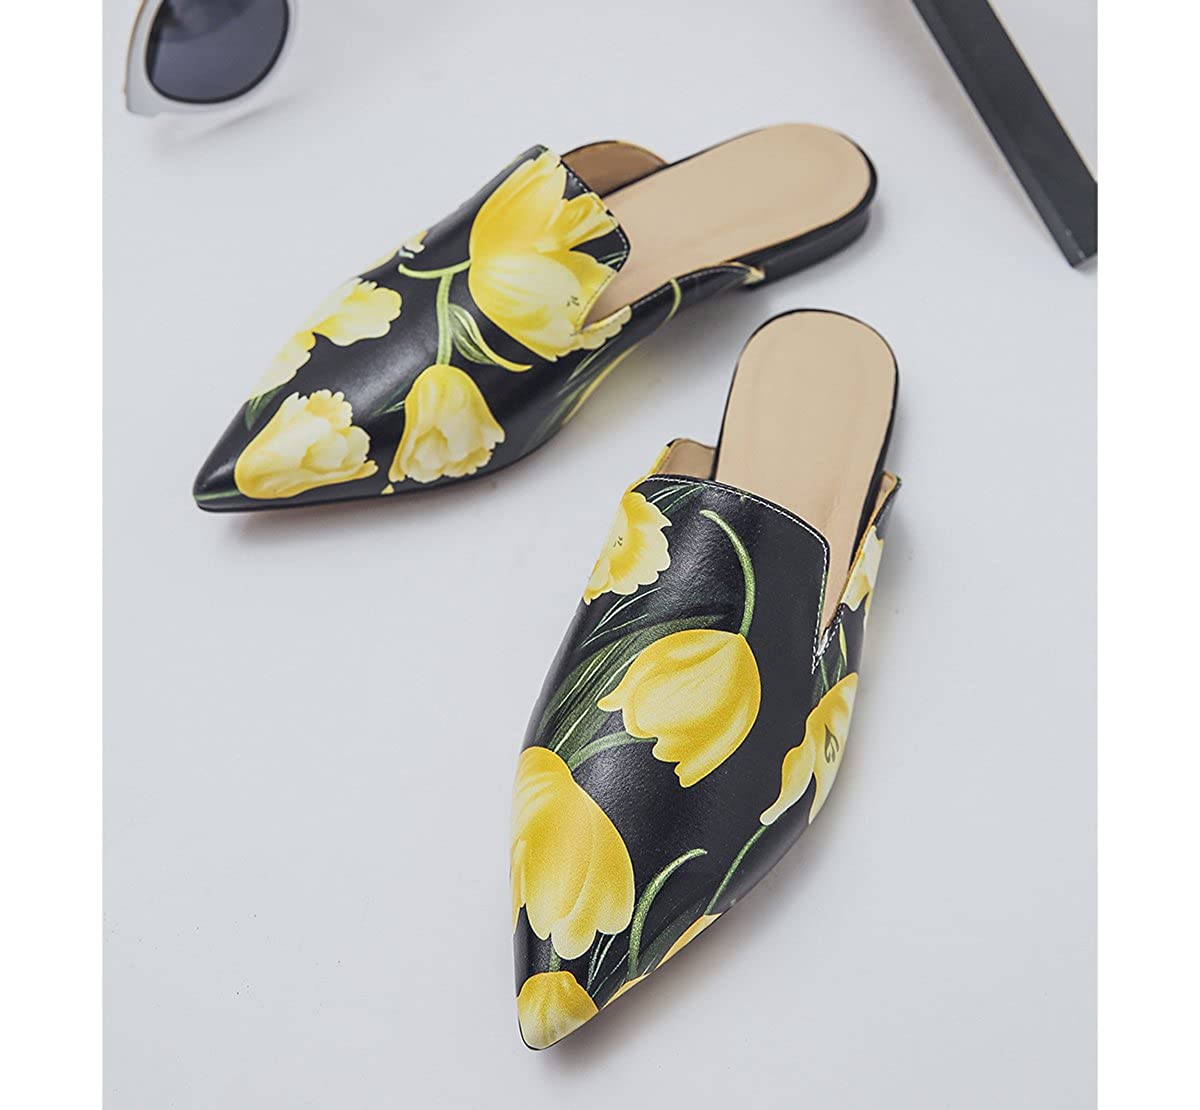 SaunterWay Womens Floral Leather Pointed Toe Mules Backless Slide Loafers Flat